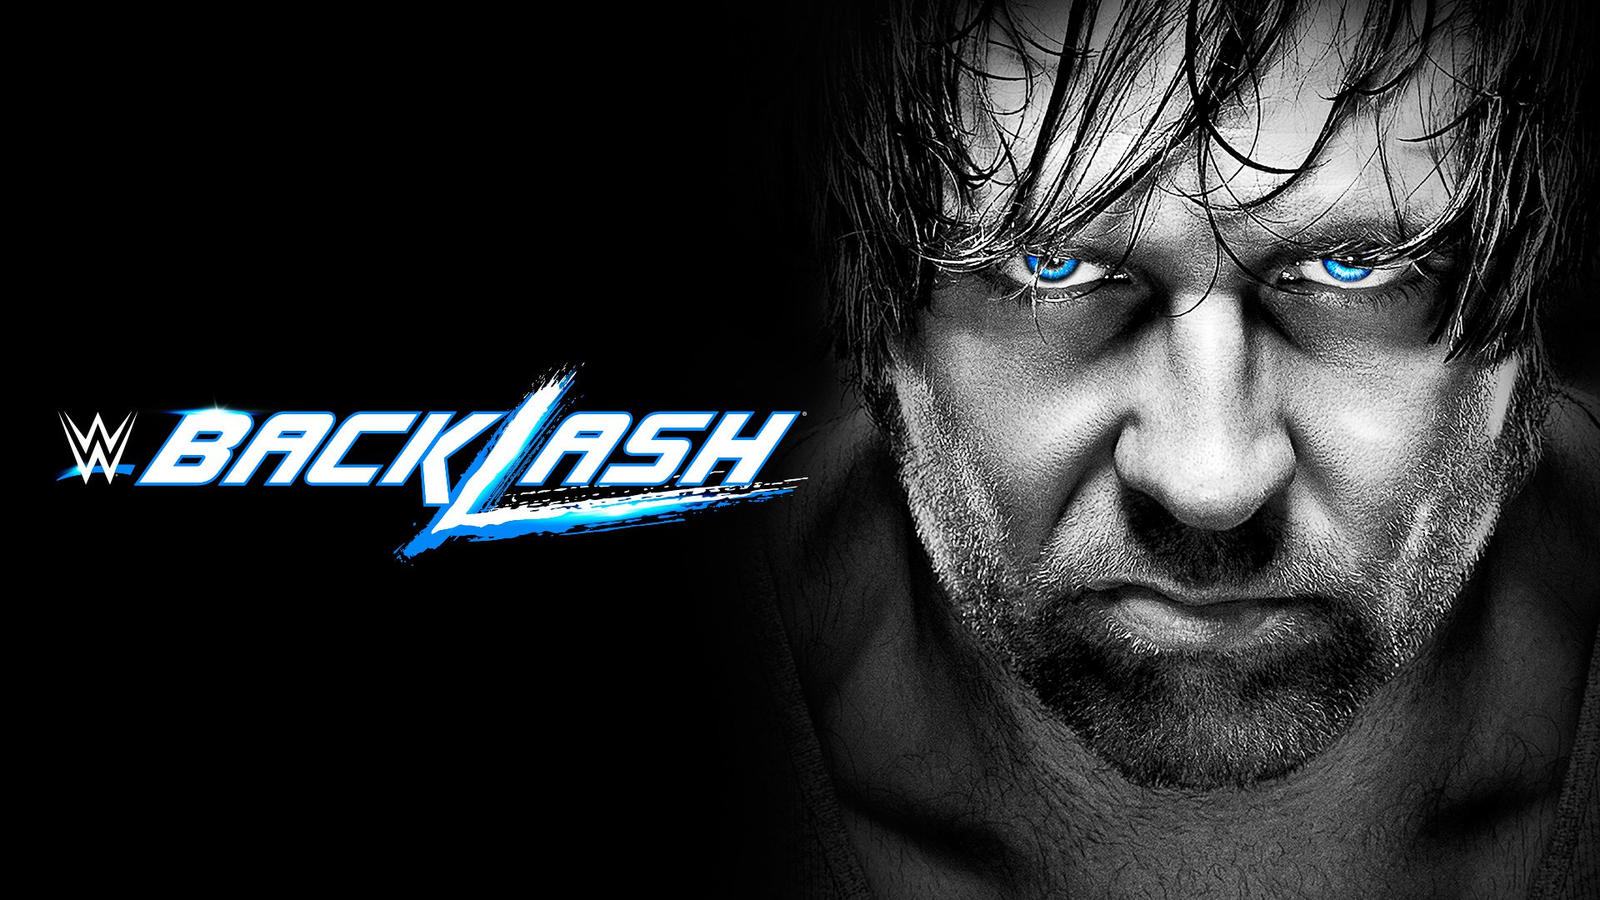 WWE2016��9��11�� PPV�������𺳡���Backlash��wwe20160911 ppv